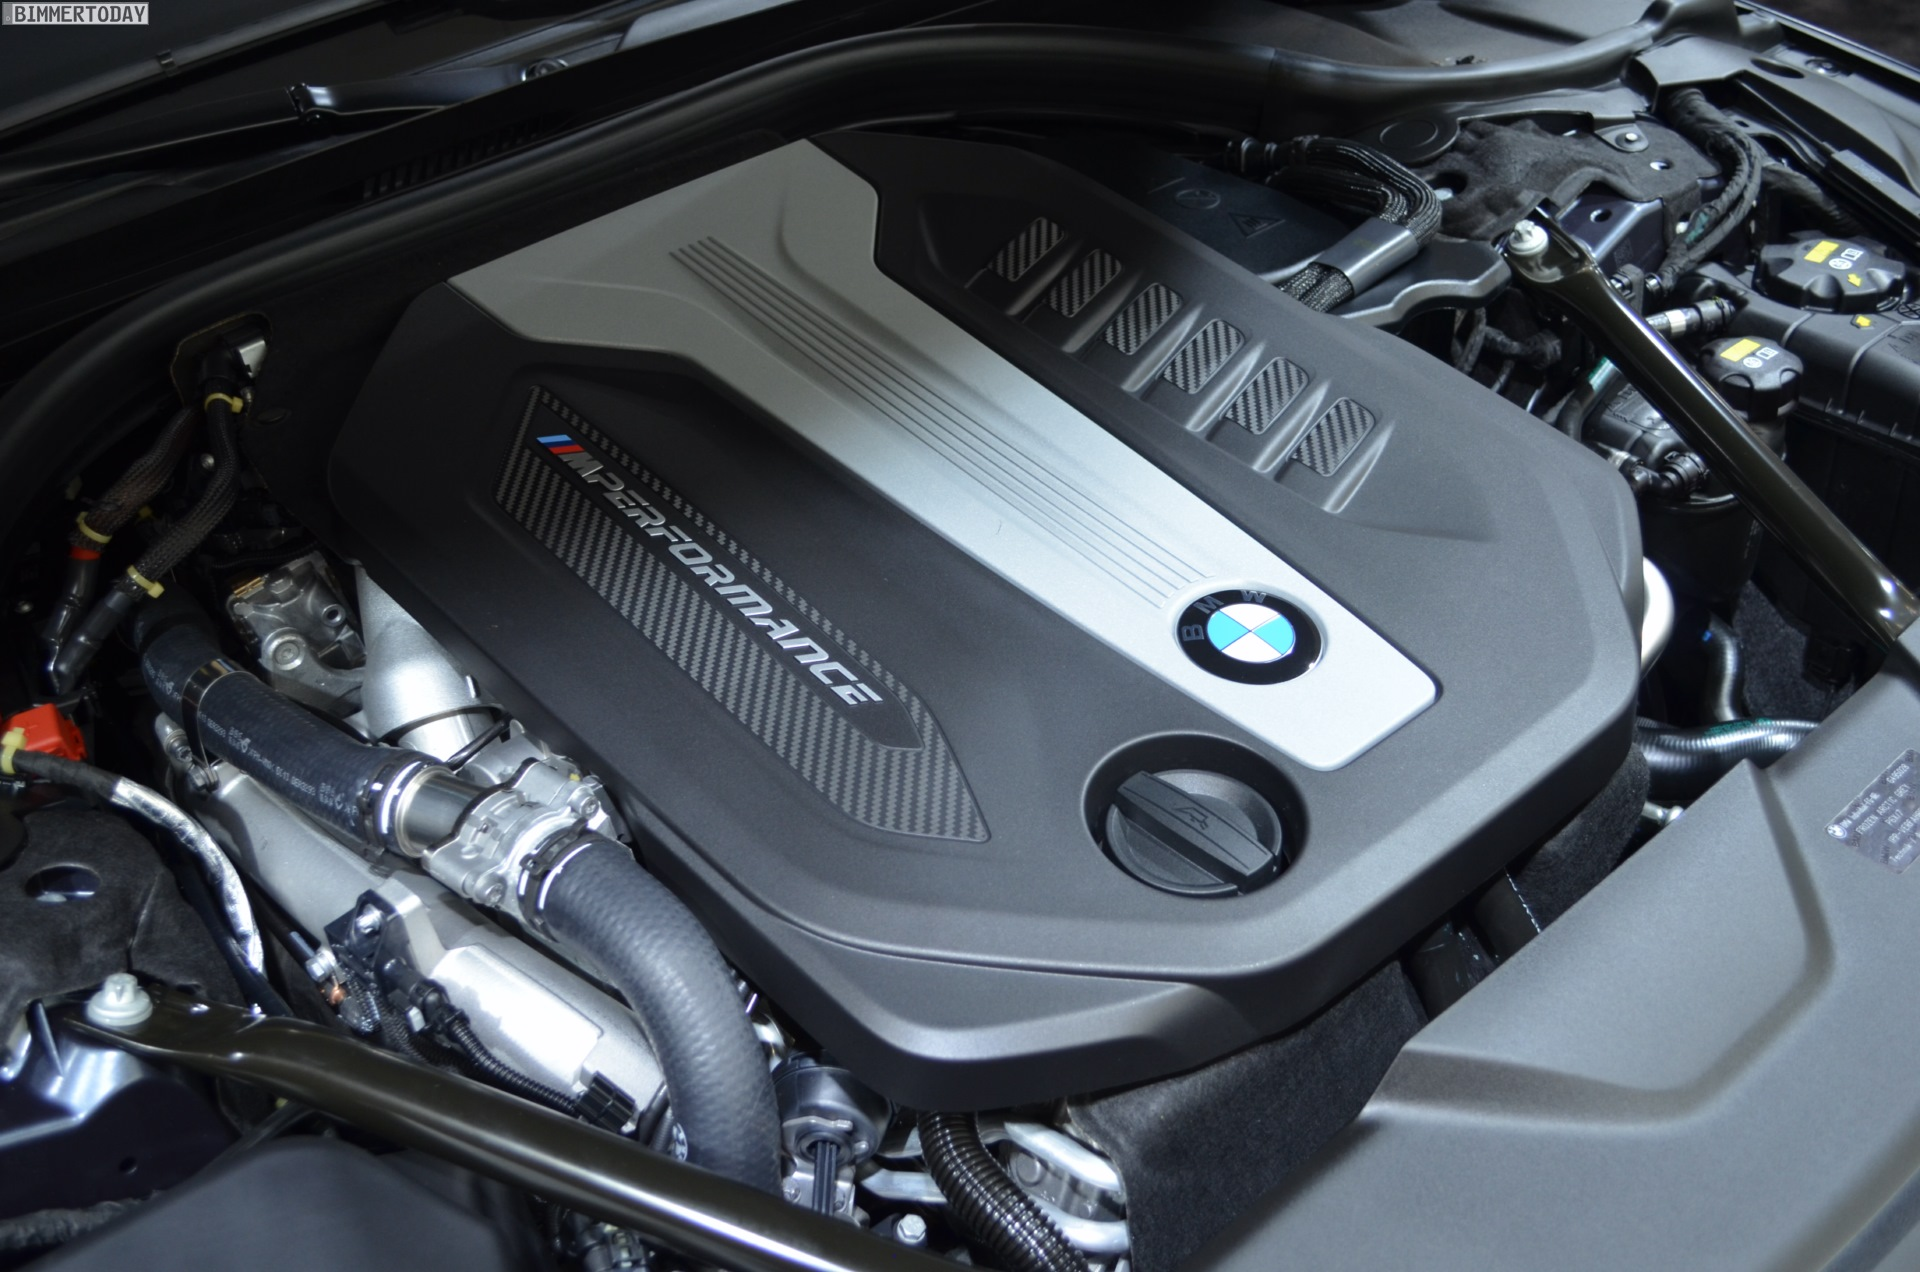 BMW Starts Technical Campaign to Fix Faulty Diesel EGR Valves in the EU